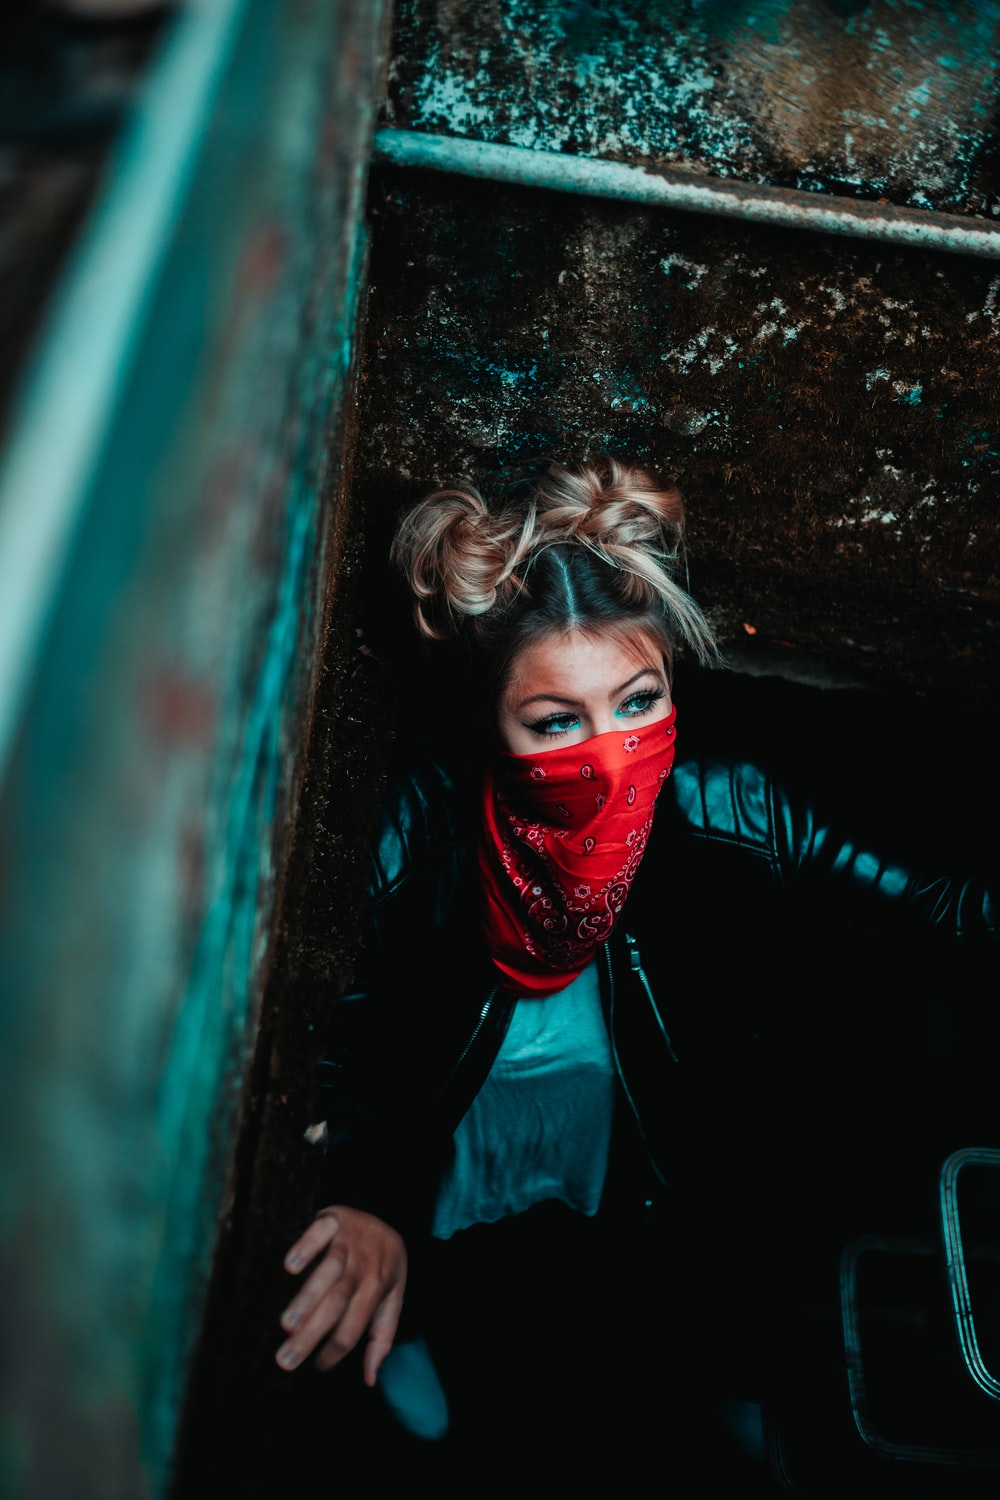 woman in red face mask and black jacket